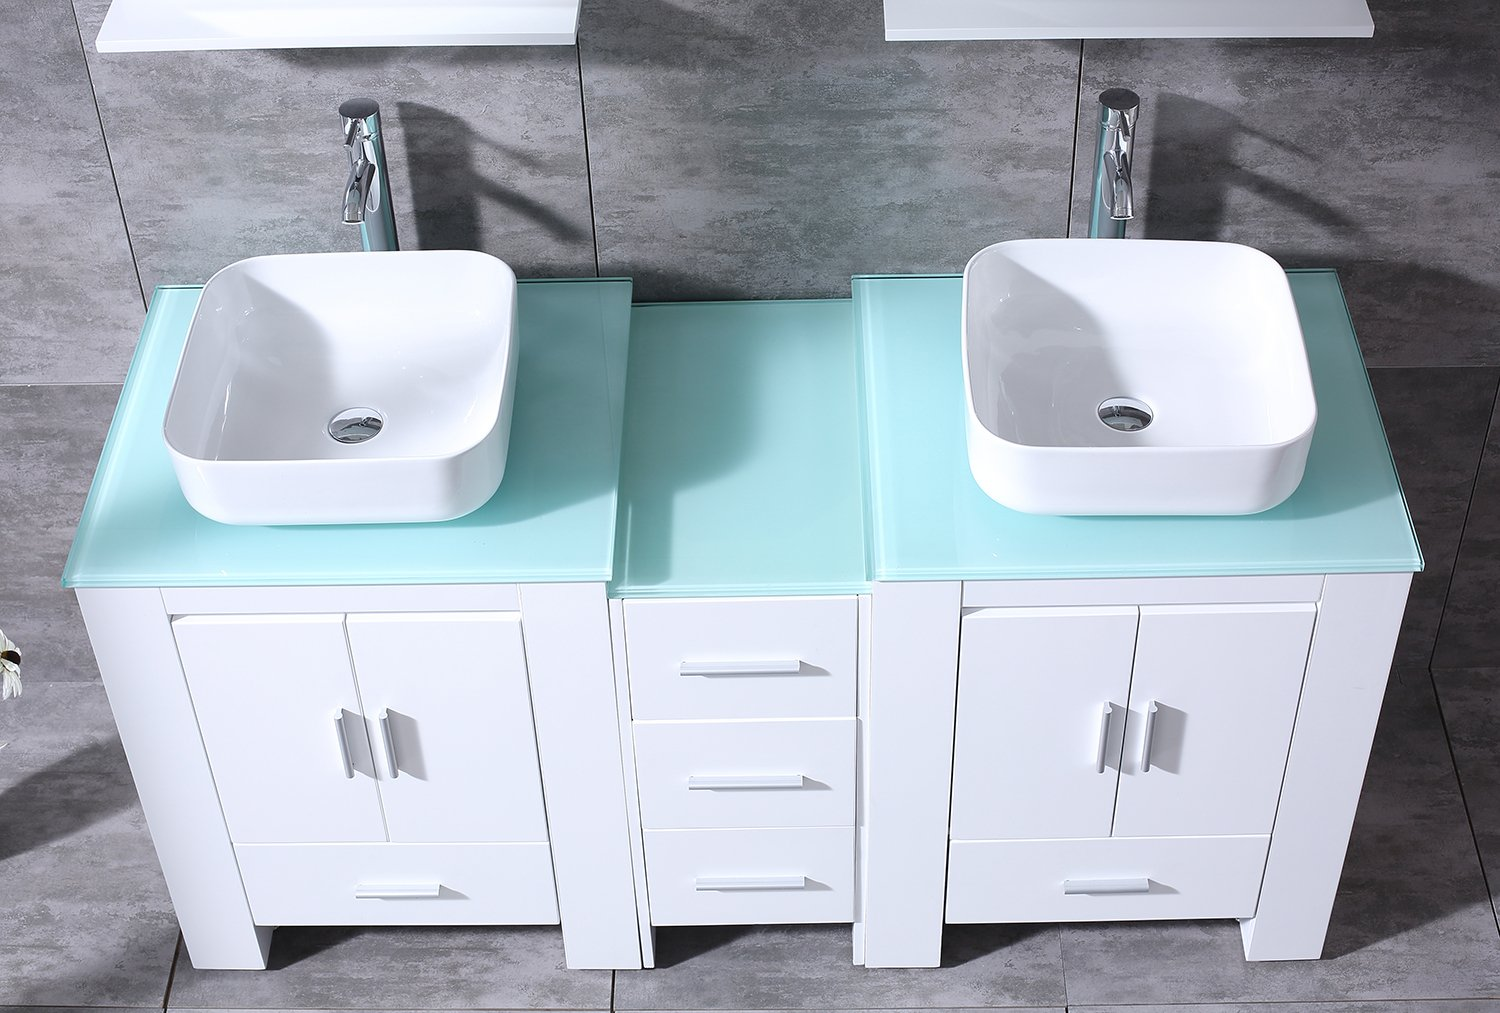 """BATHJOY Luxury 60"""" White Bathroom Double Wood Vanity Cabinet with Square Ceramic Vessel Sink and Mirrors Faucet Drain Combo by BATHJOY (Image #6)"""